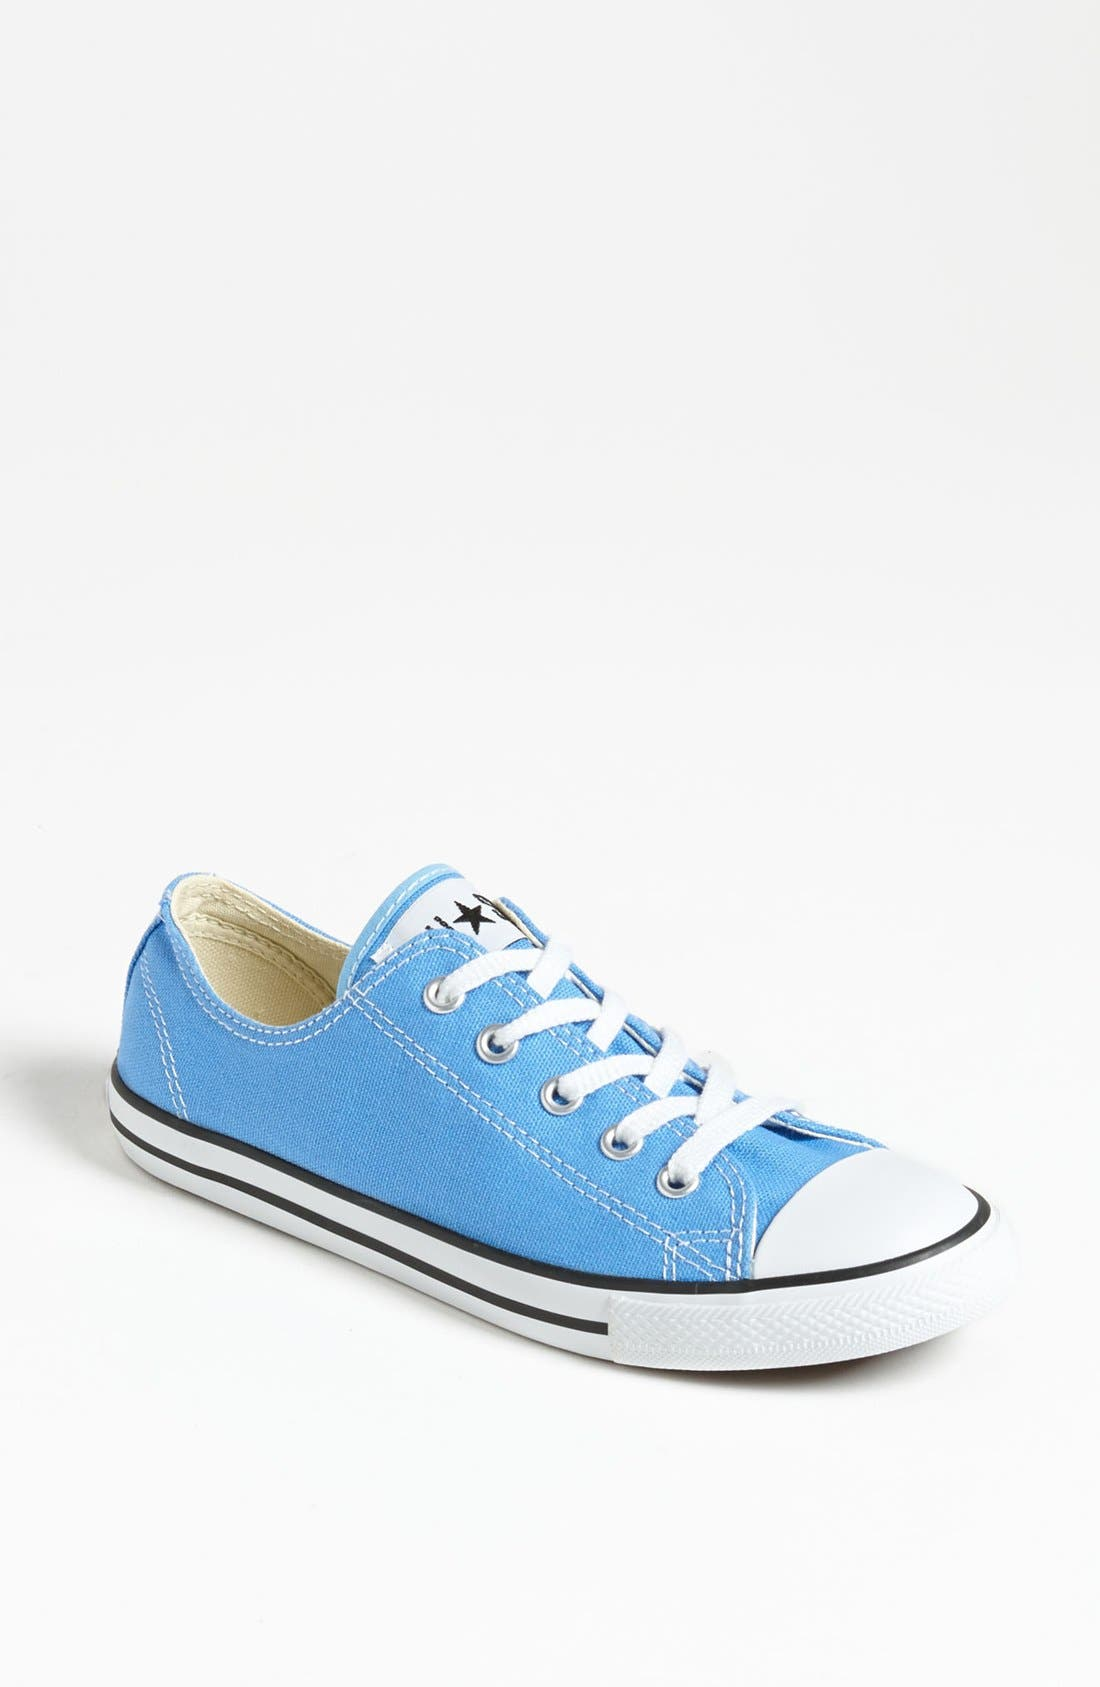 Alternate Image 1 Selected - Converse Chuck Taylor® 'Dainty' Sneaker